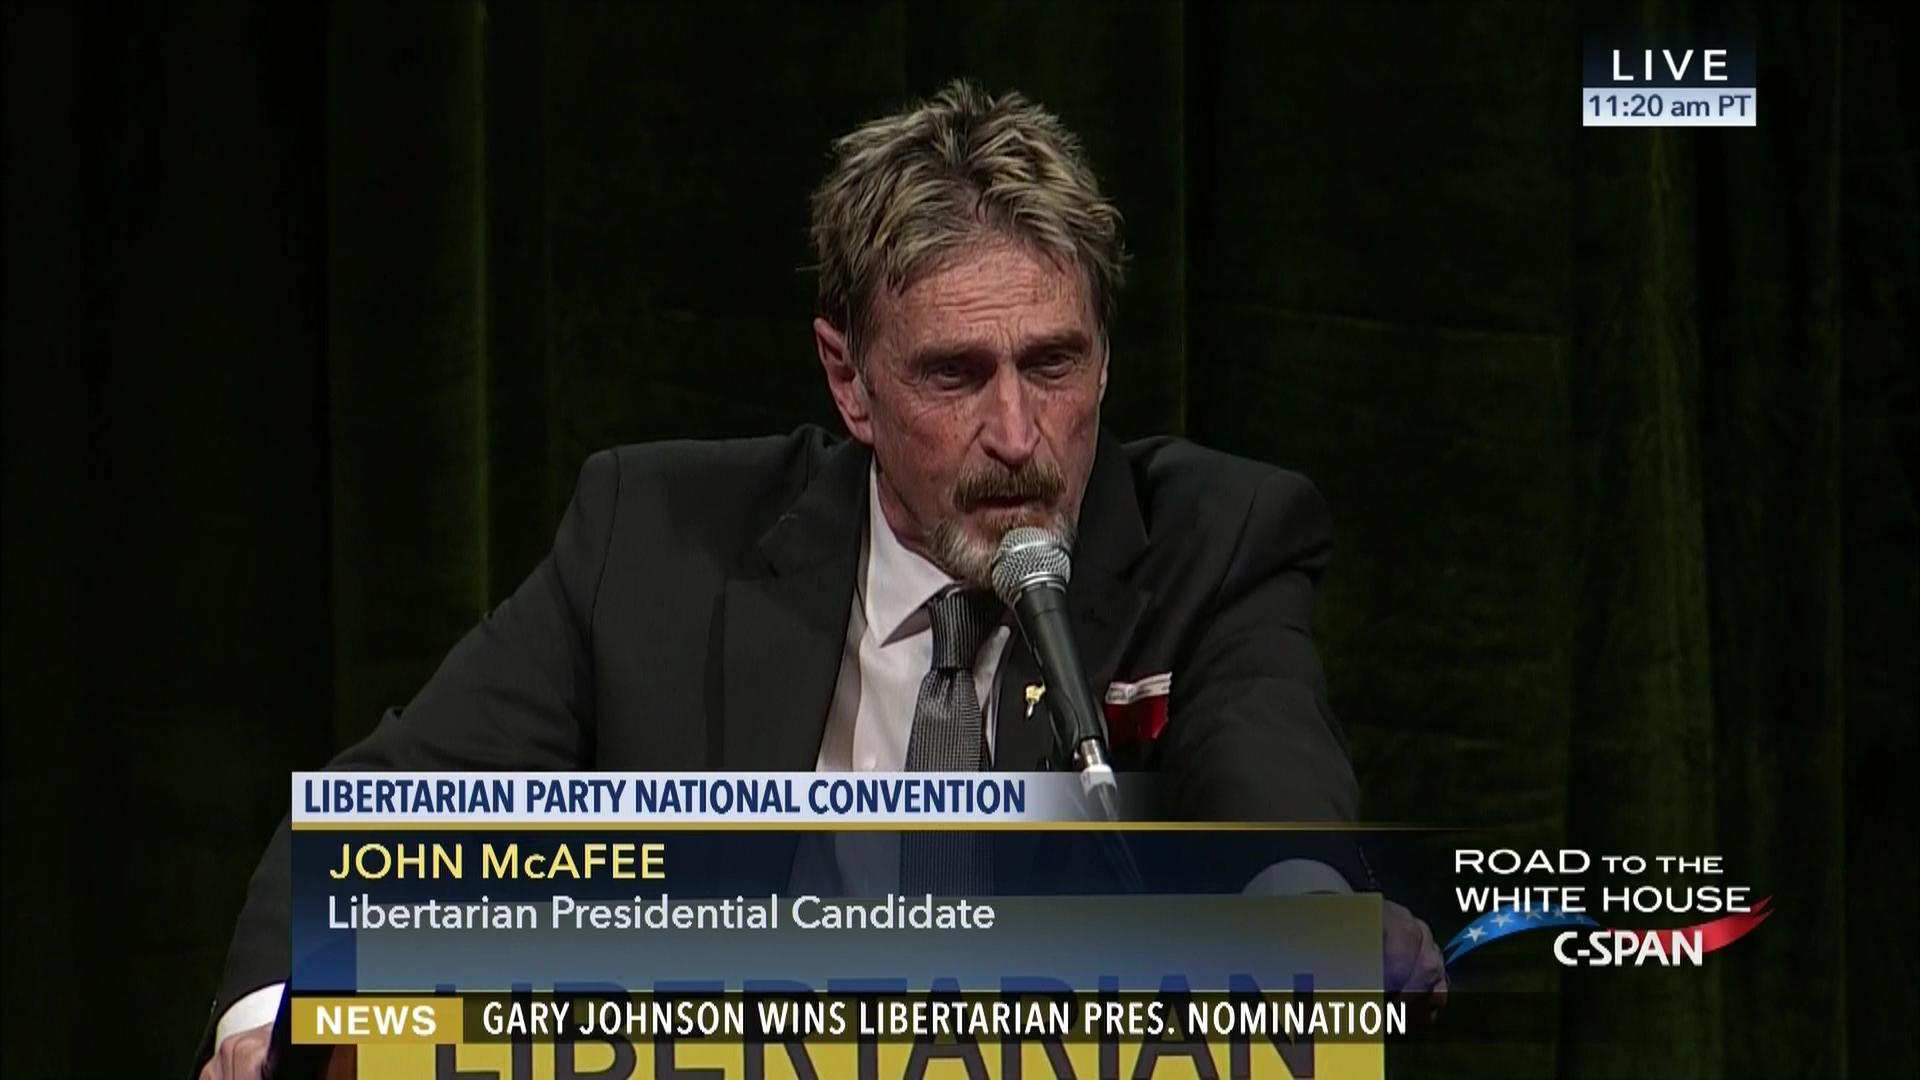 2008 01 31 the libertarian party s response to the state of the union address feed - John D Mcafee